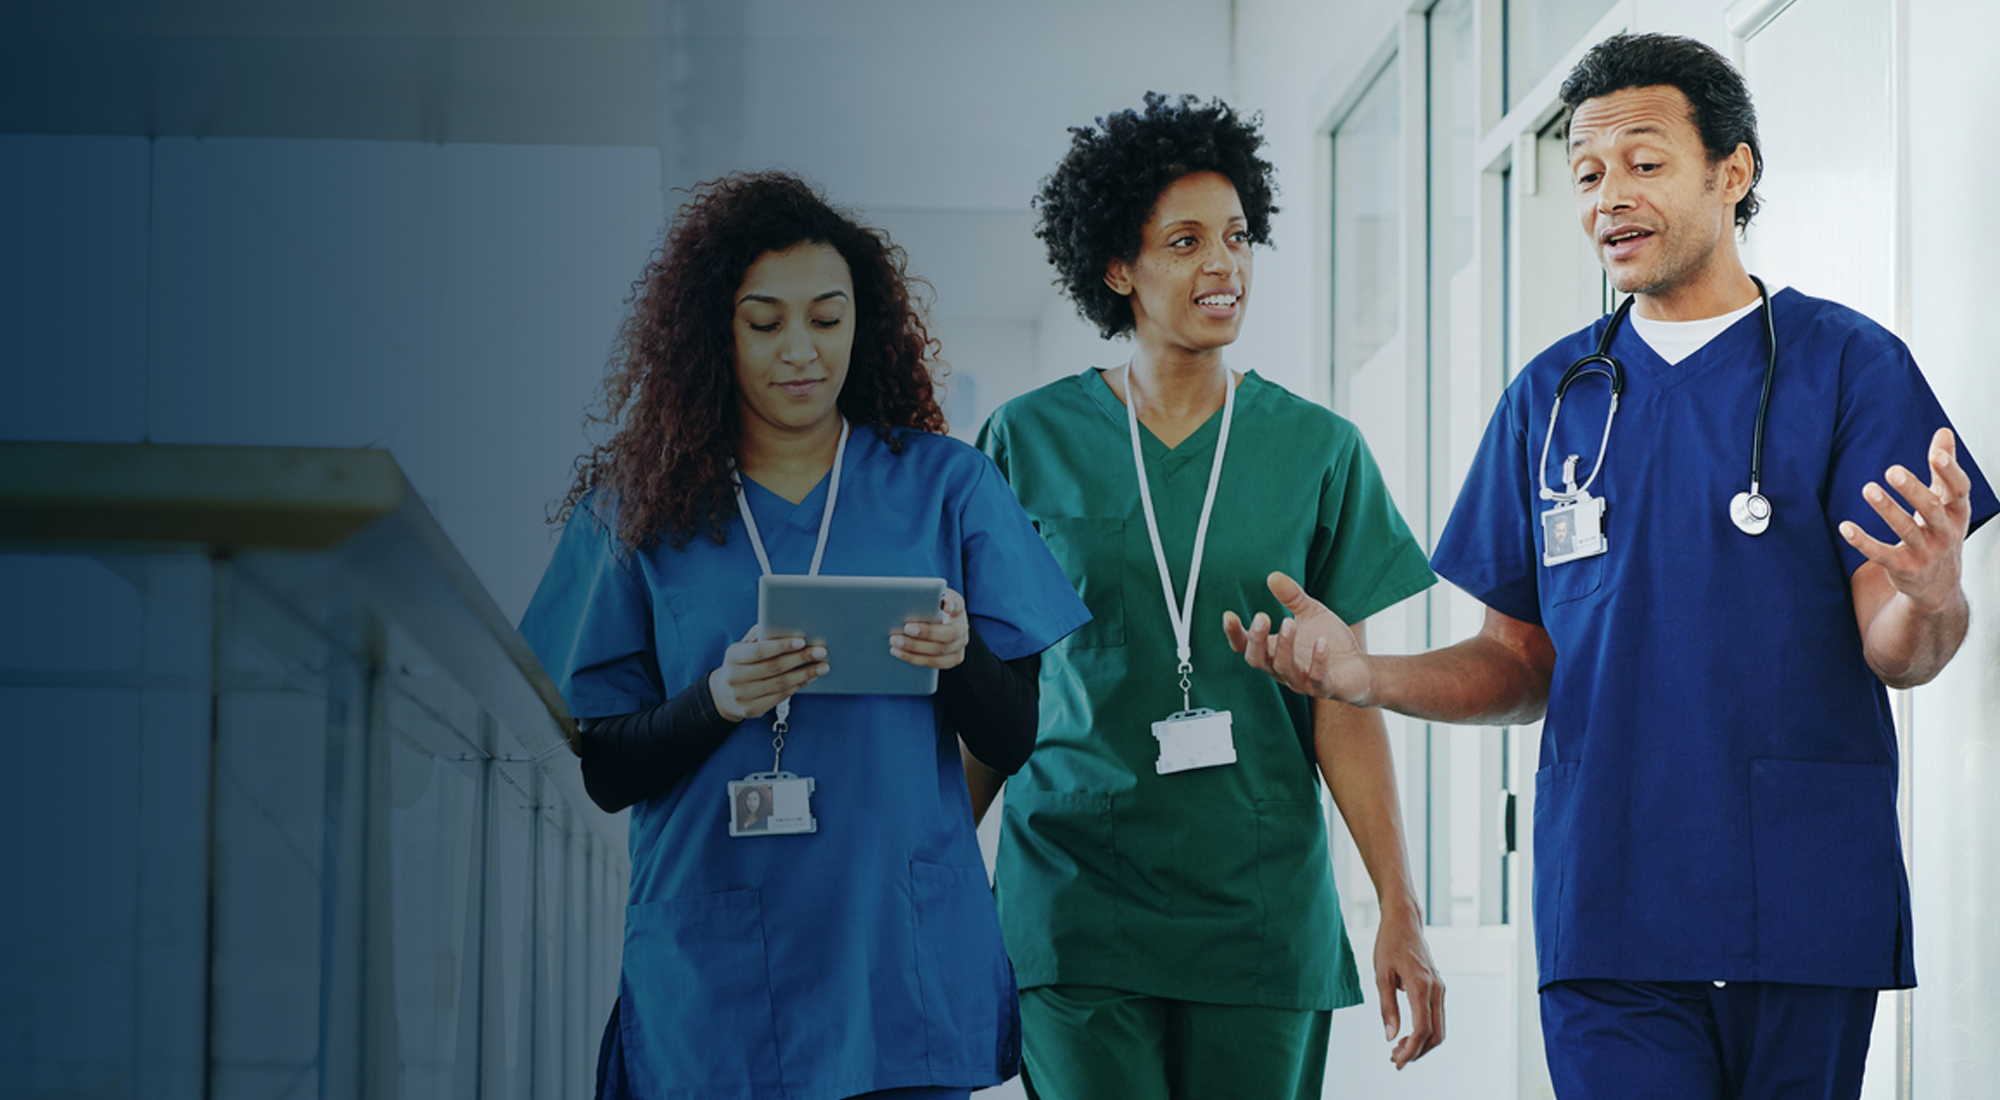 Nurse triage service now available for Pinnacol customers